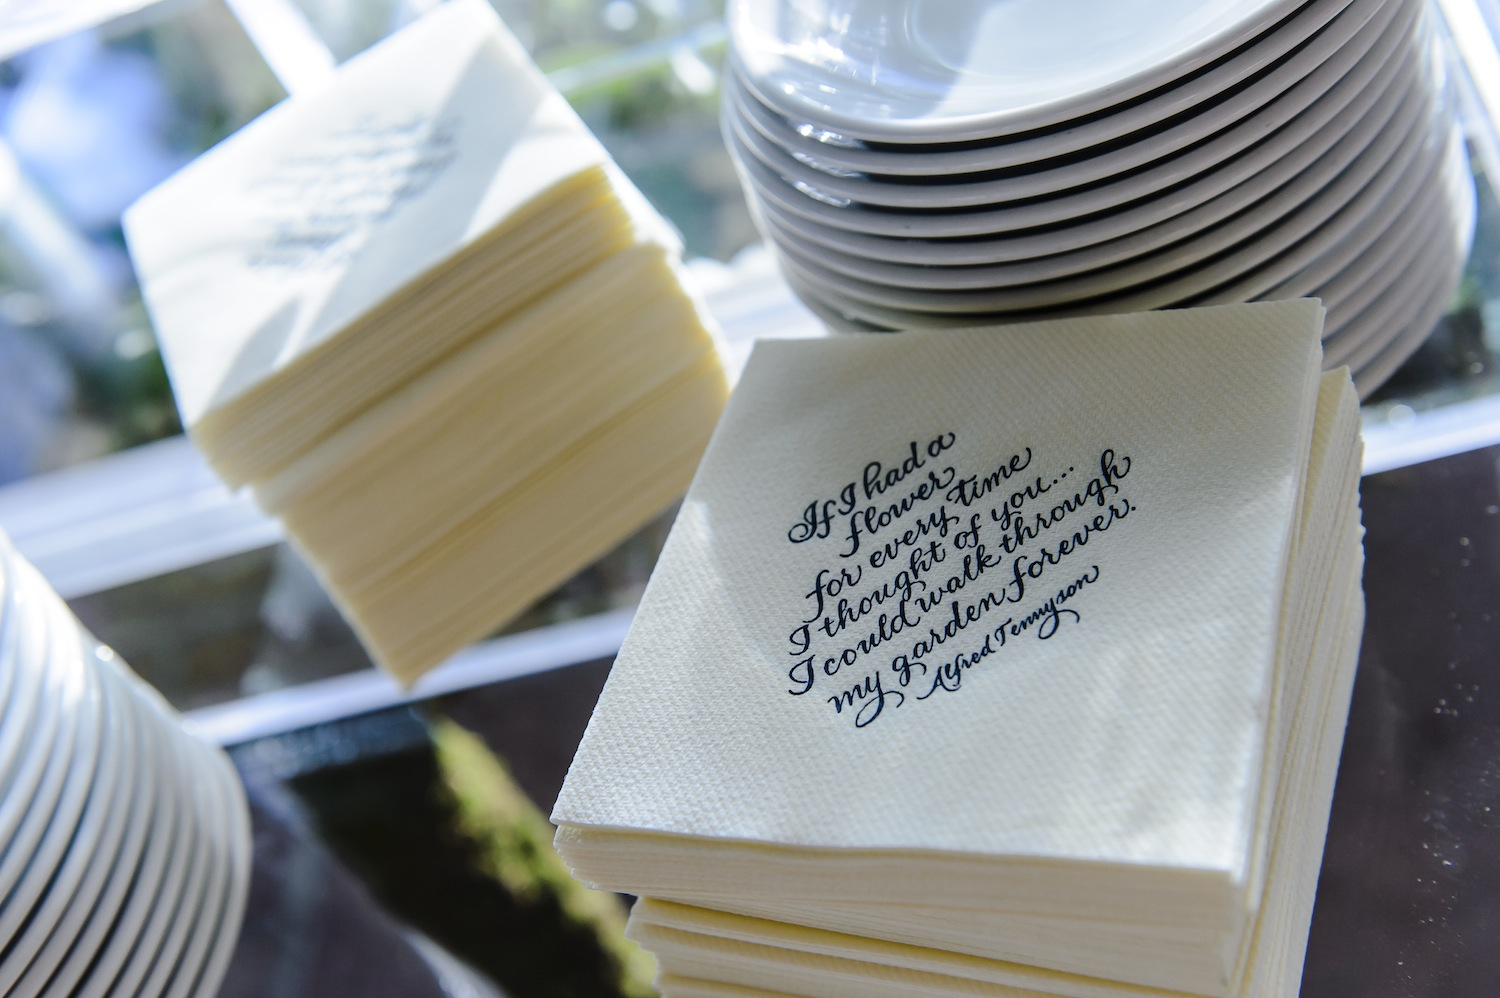 Sentimental and playful quotes to use in wedding dcor inside weddings alfred tennyson love quote on cocktail napkin at wedding reception junglespirit Gallery